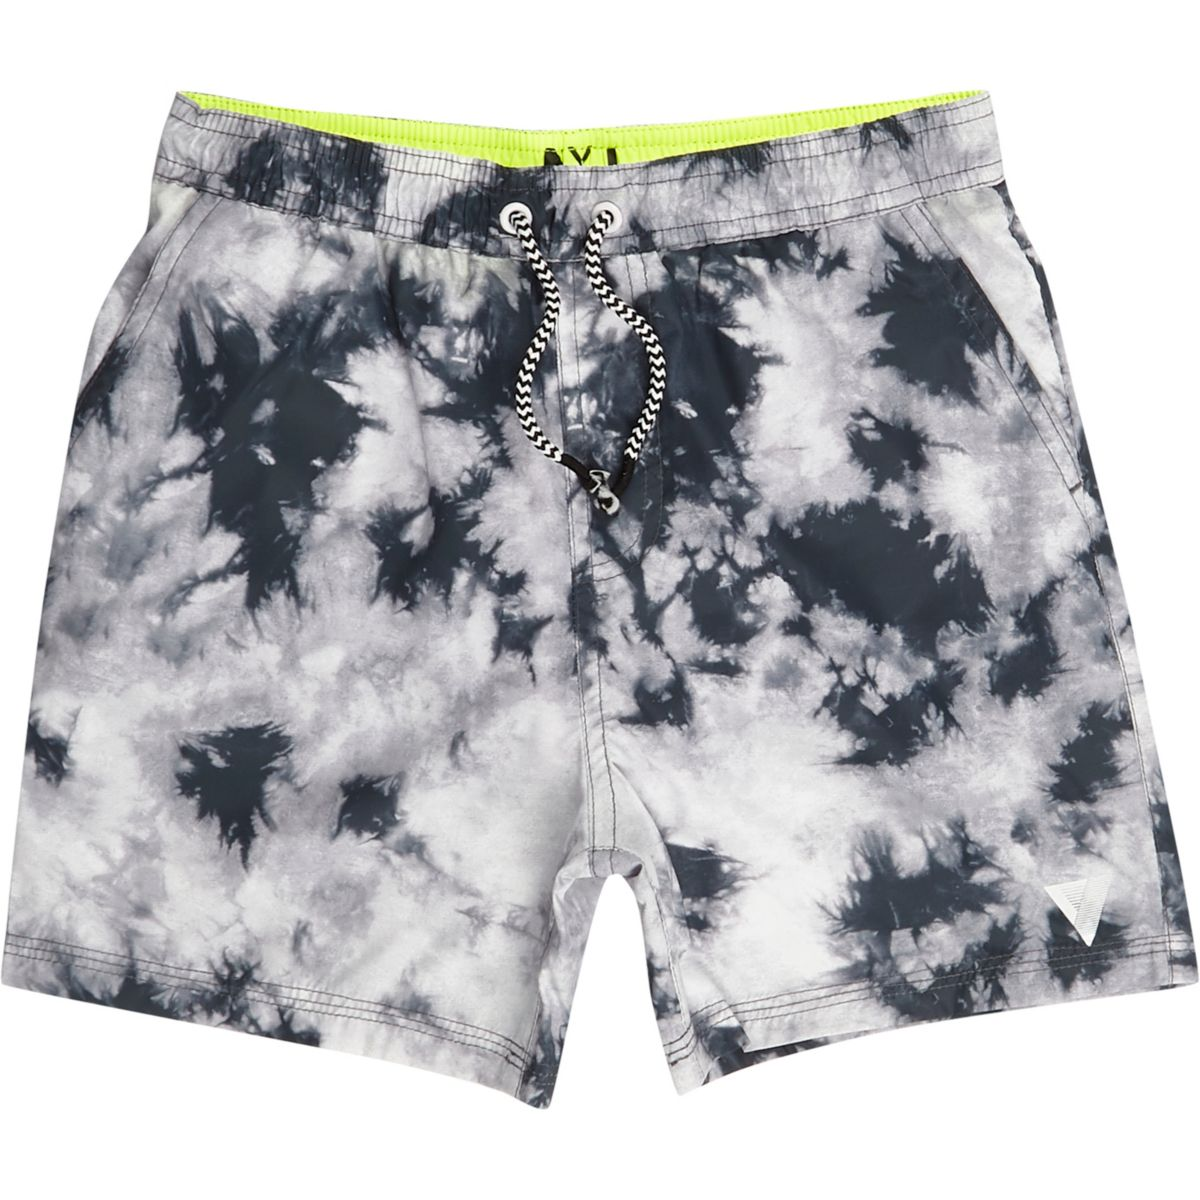 Boys grey tie dye swim trunks